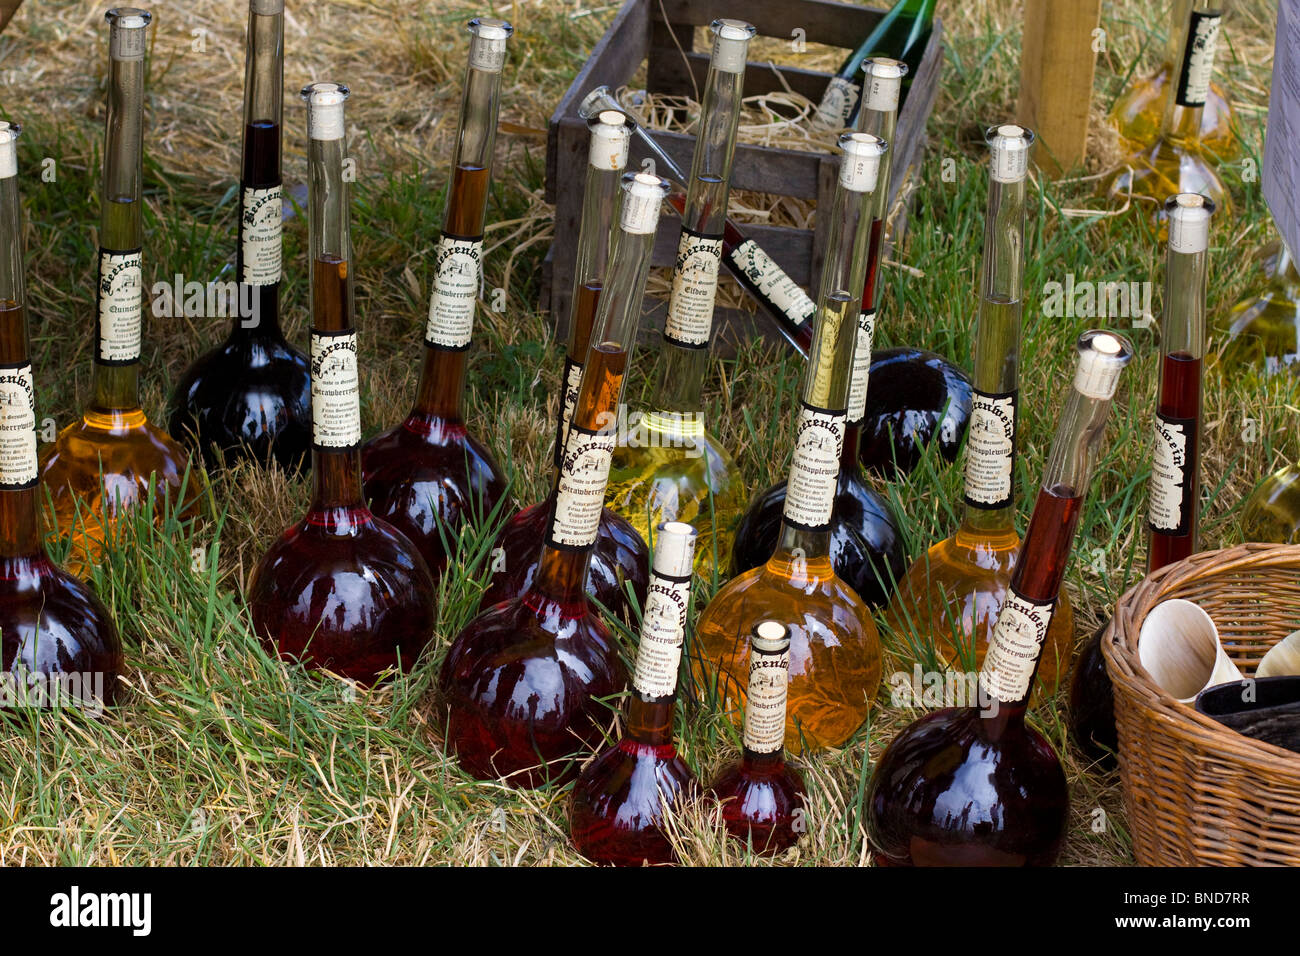 Alcoholic Beverages at a Festival In Tewksbury - Stock Image